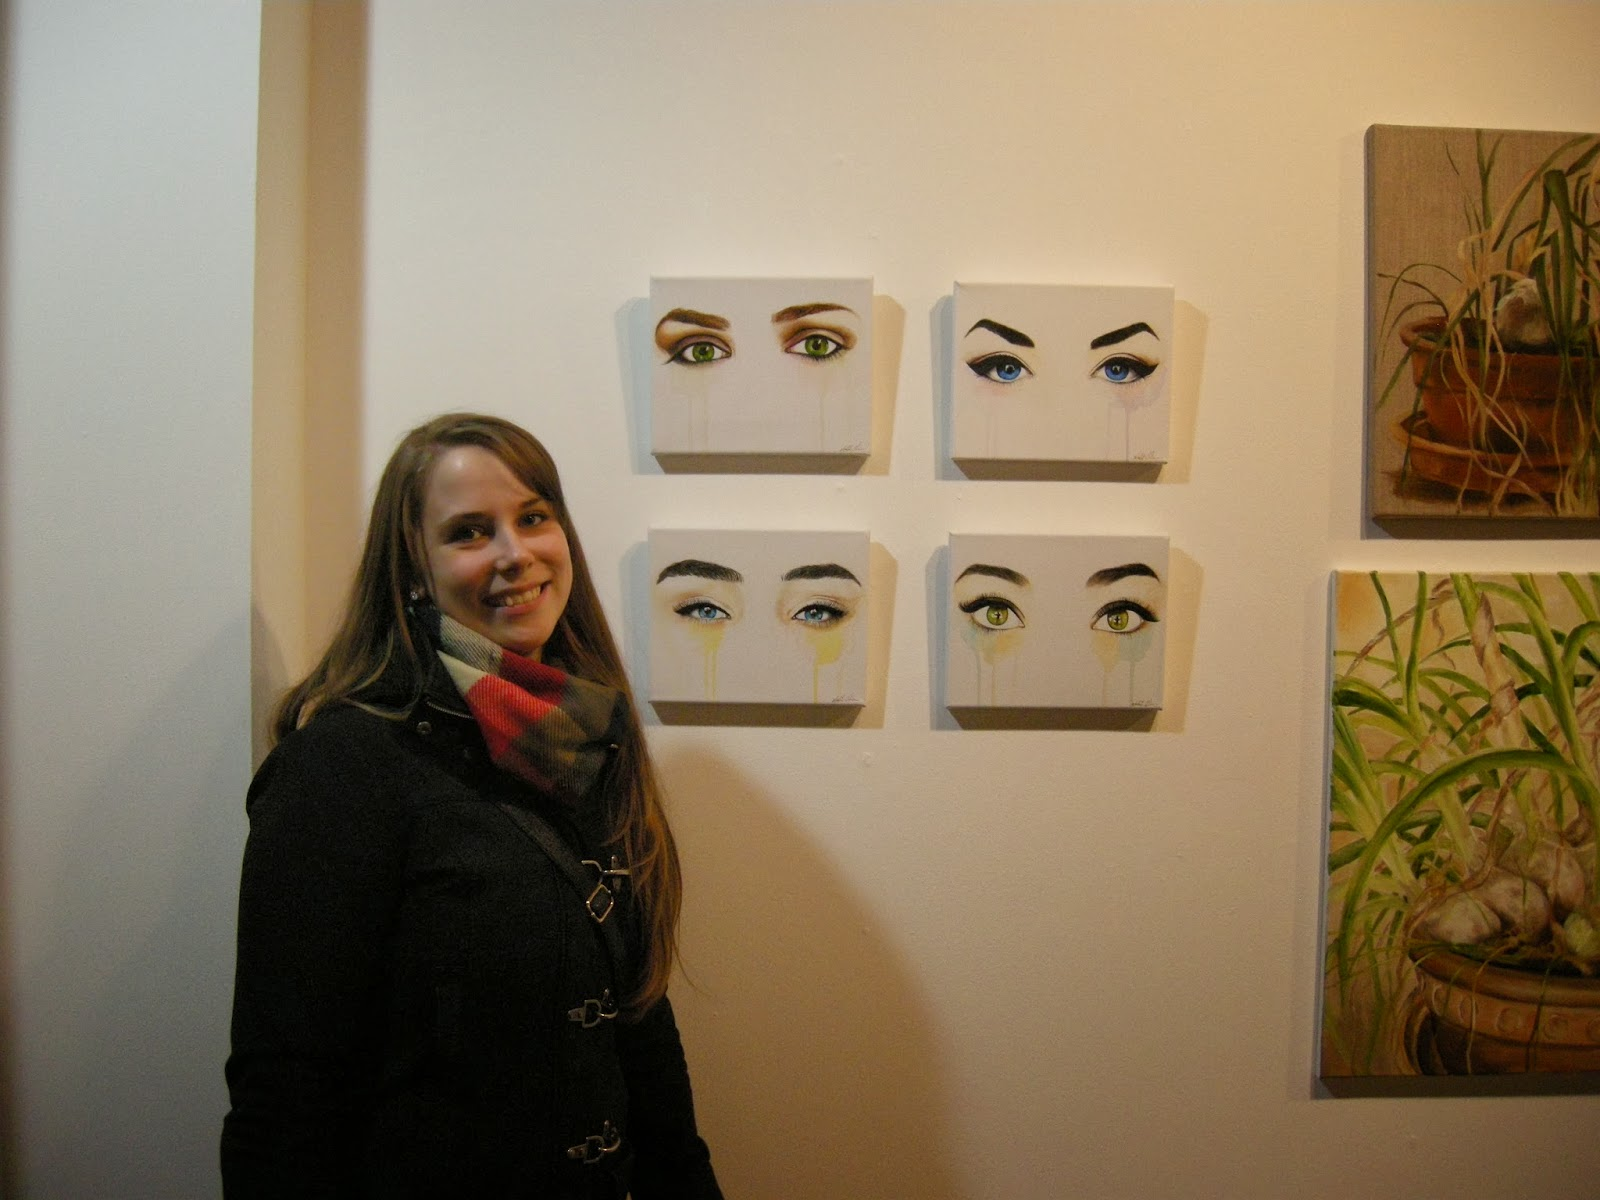 black water art, white water gallery, seeing into the soul, eye paintings, north bay, art, artist, malinda prudhomme, original artwork, original paintings, north bay art walk, toronto artist